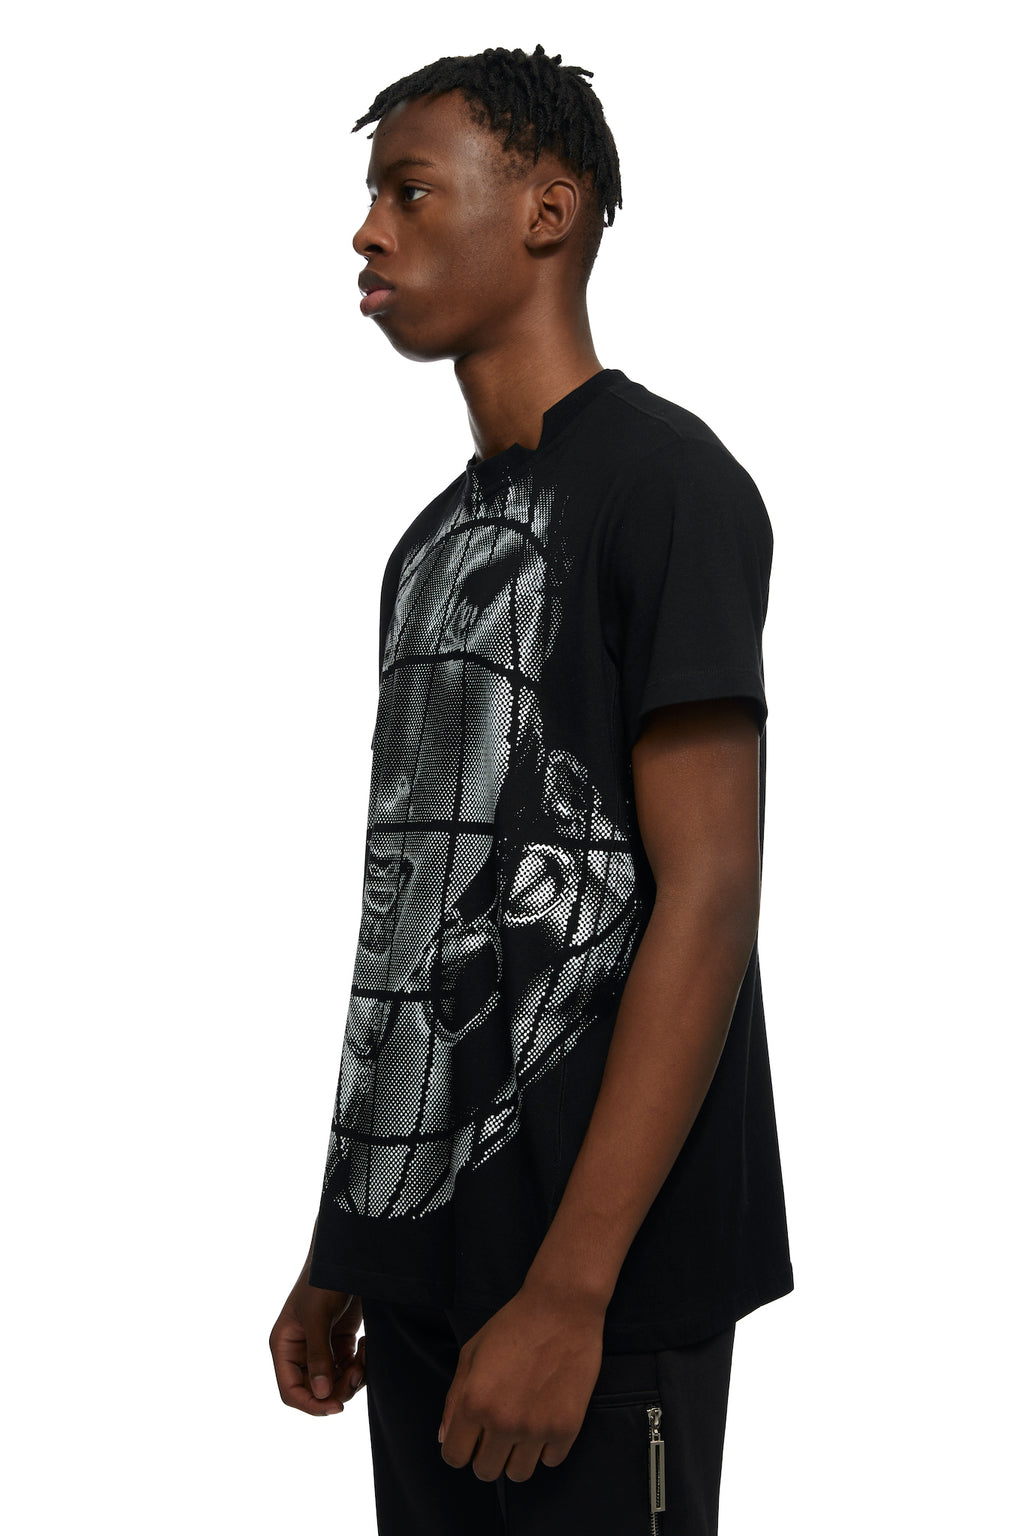 HTOWN, SPENCER BADU, SPENCER BADU MENSWEAR, HTOWN SPENCER BADU, SPENDER BADU FACE TEE, FACE TEE, SPENCER BADU T-SHIRT, SPENCER BADU TEE, FACE T-SHIRT, FACE TEE, COTTON, JOGGERS, TEE WITH WHITE FACE, LONDON DESIGNER, LONDON BOUTIQUE, SPRING SUMMER 2021, SS21, LUXURY DESIGNER, LUXURY FASHION, MEN'S LUXURY T-SHIRT, LUXURY TEE, CUT-OUT DETAIL